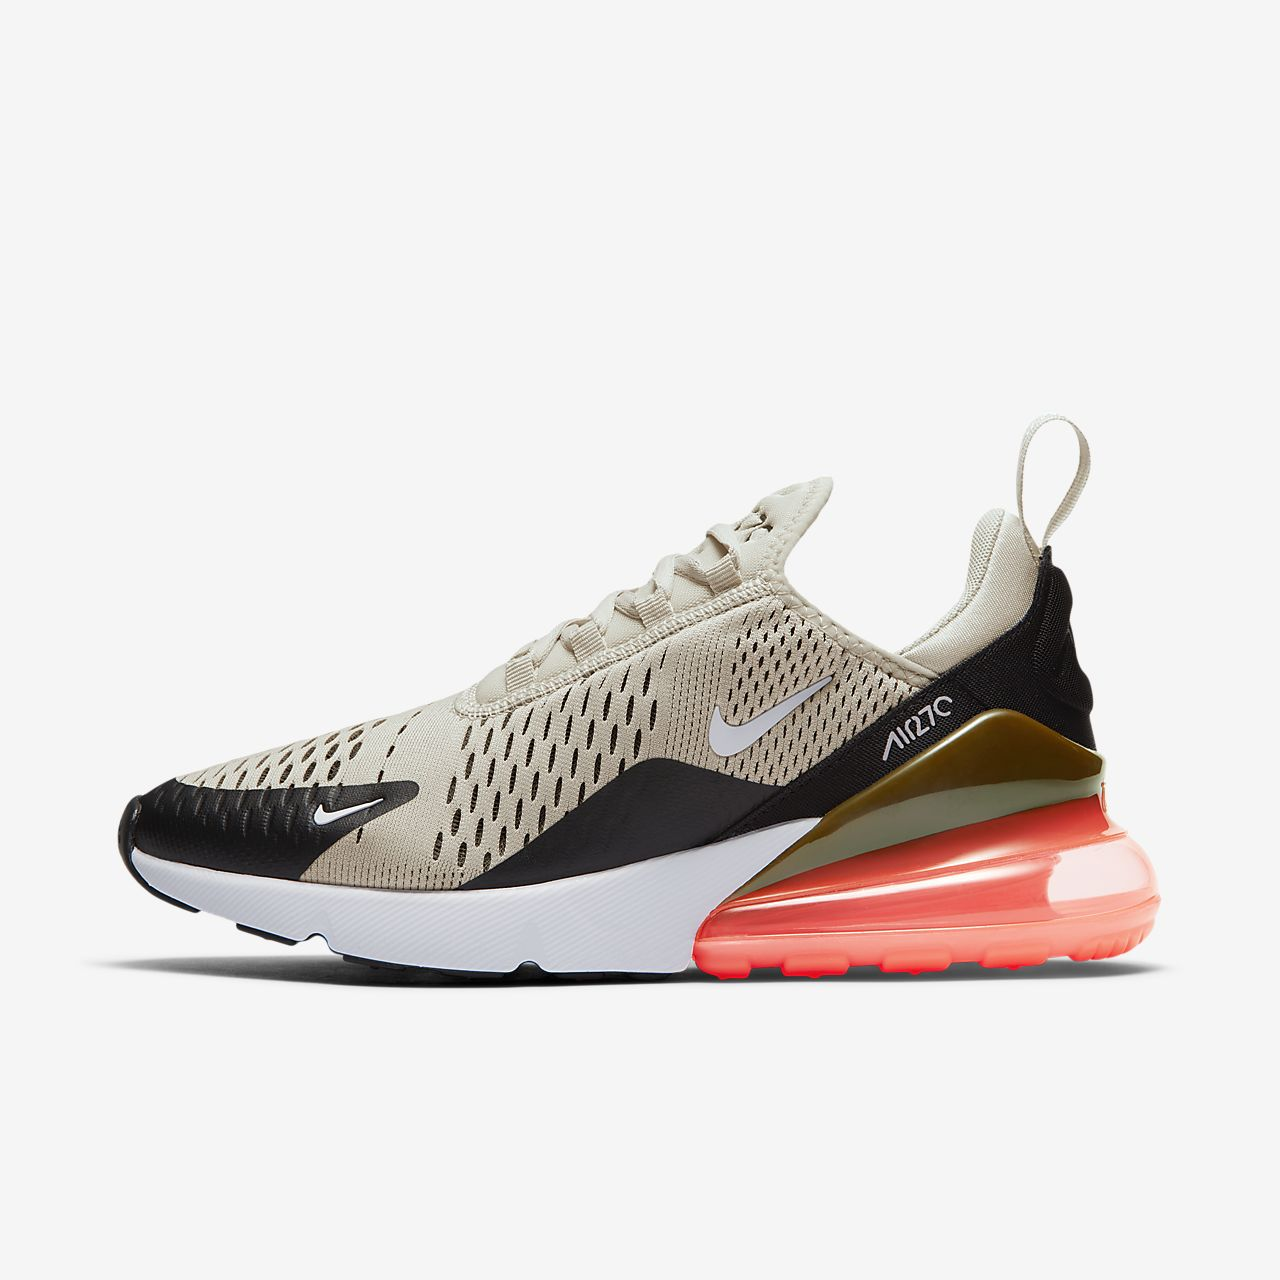 Black Friday Nike Air Max 270 University Red Weiß